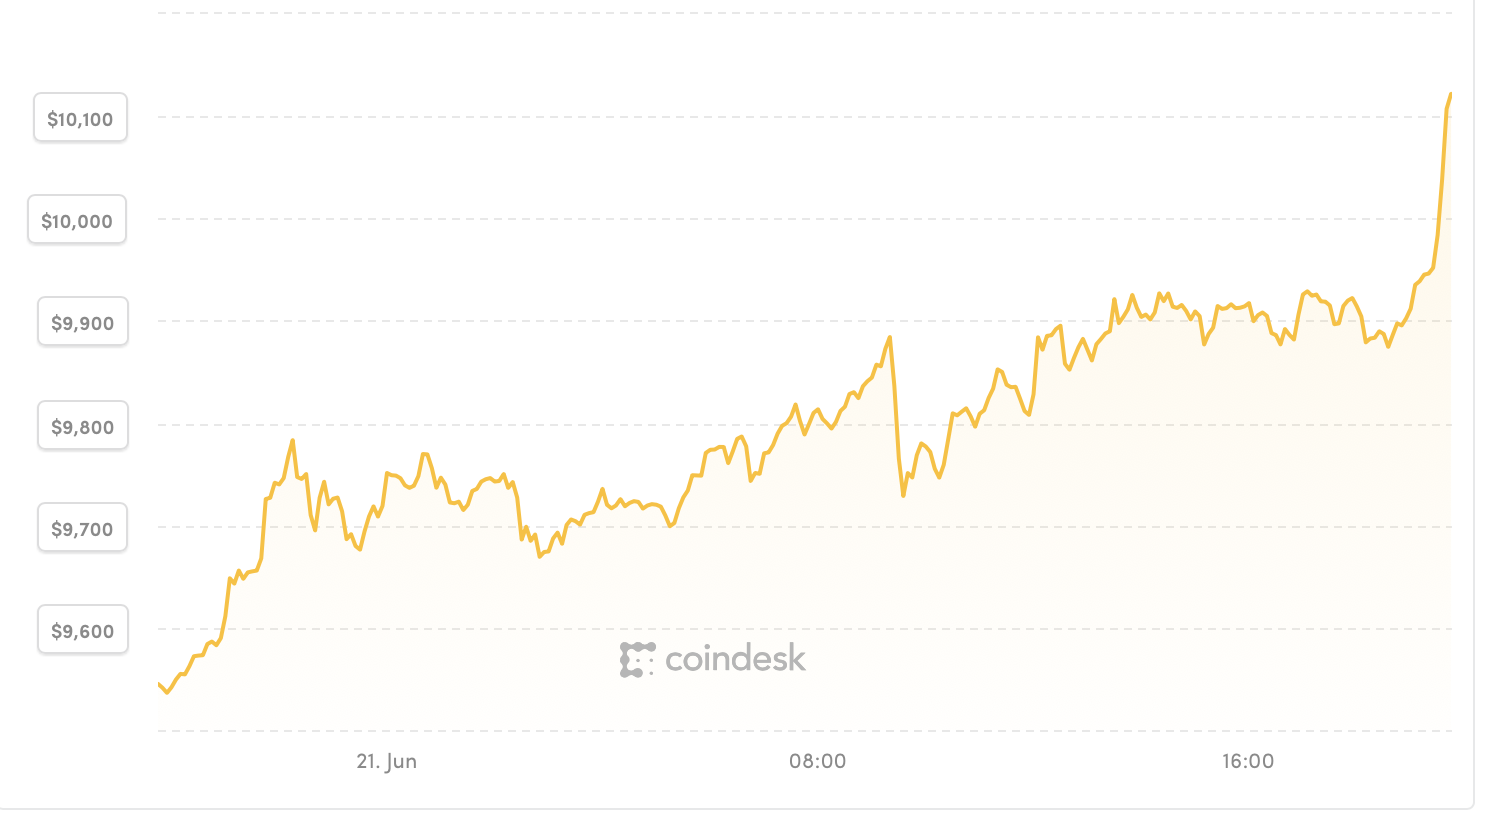 Bitcoin buy pressure hits a 2-month high